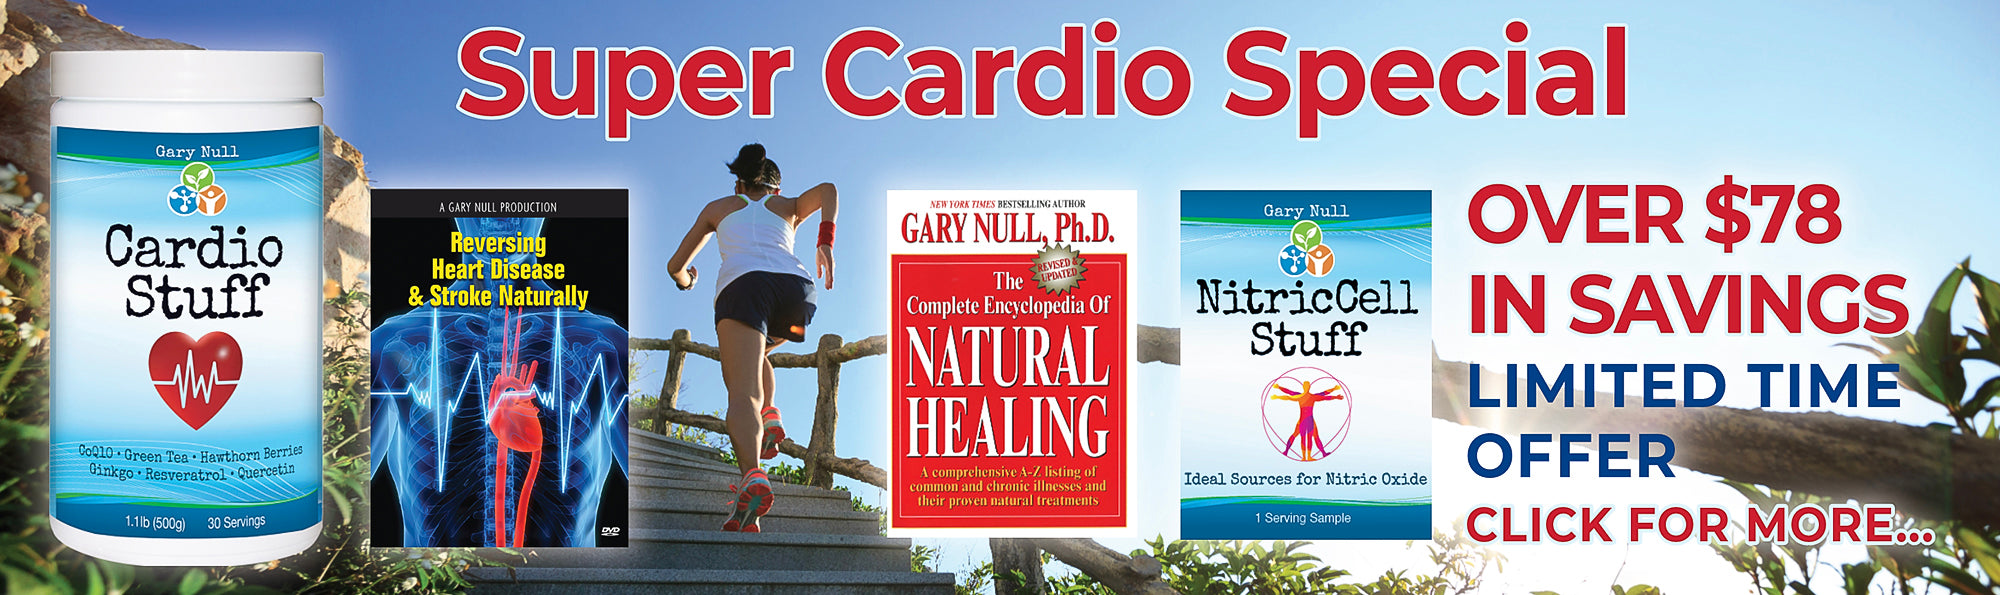 Super Cardio Special - Cardio Stuff with Encyclopedia of Natural Healing Book, DVD amd NitricCell sample